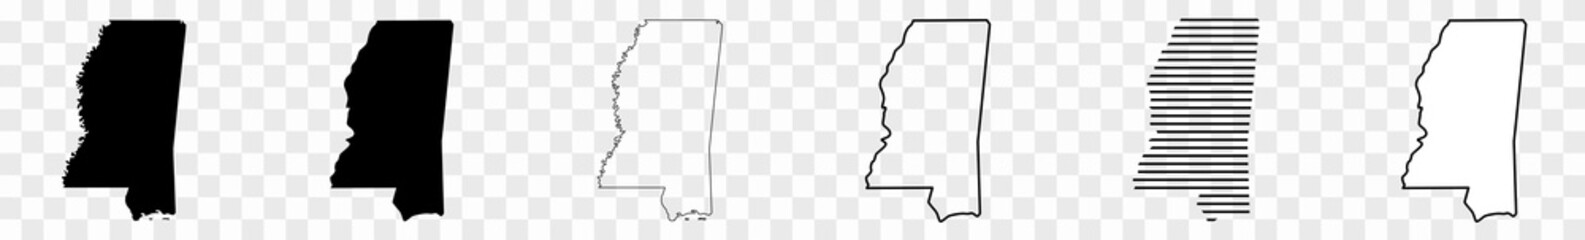 Mississippi Map Black | State Border | United States | US America | Transparent Isolated | Variations